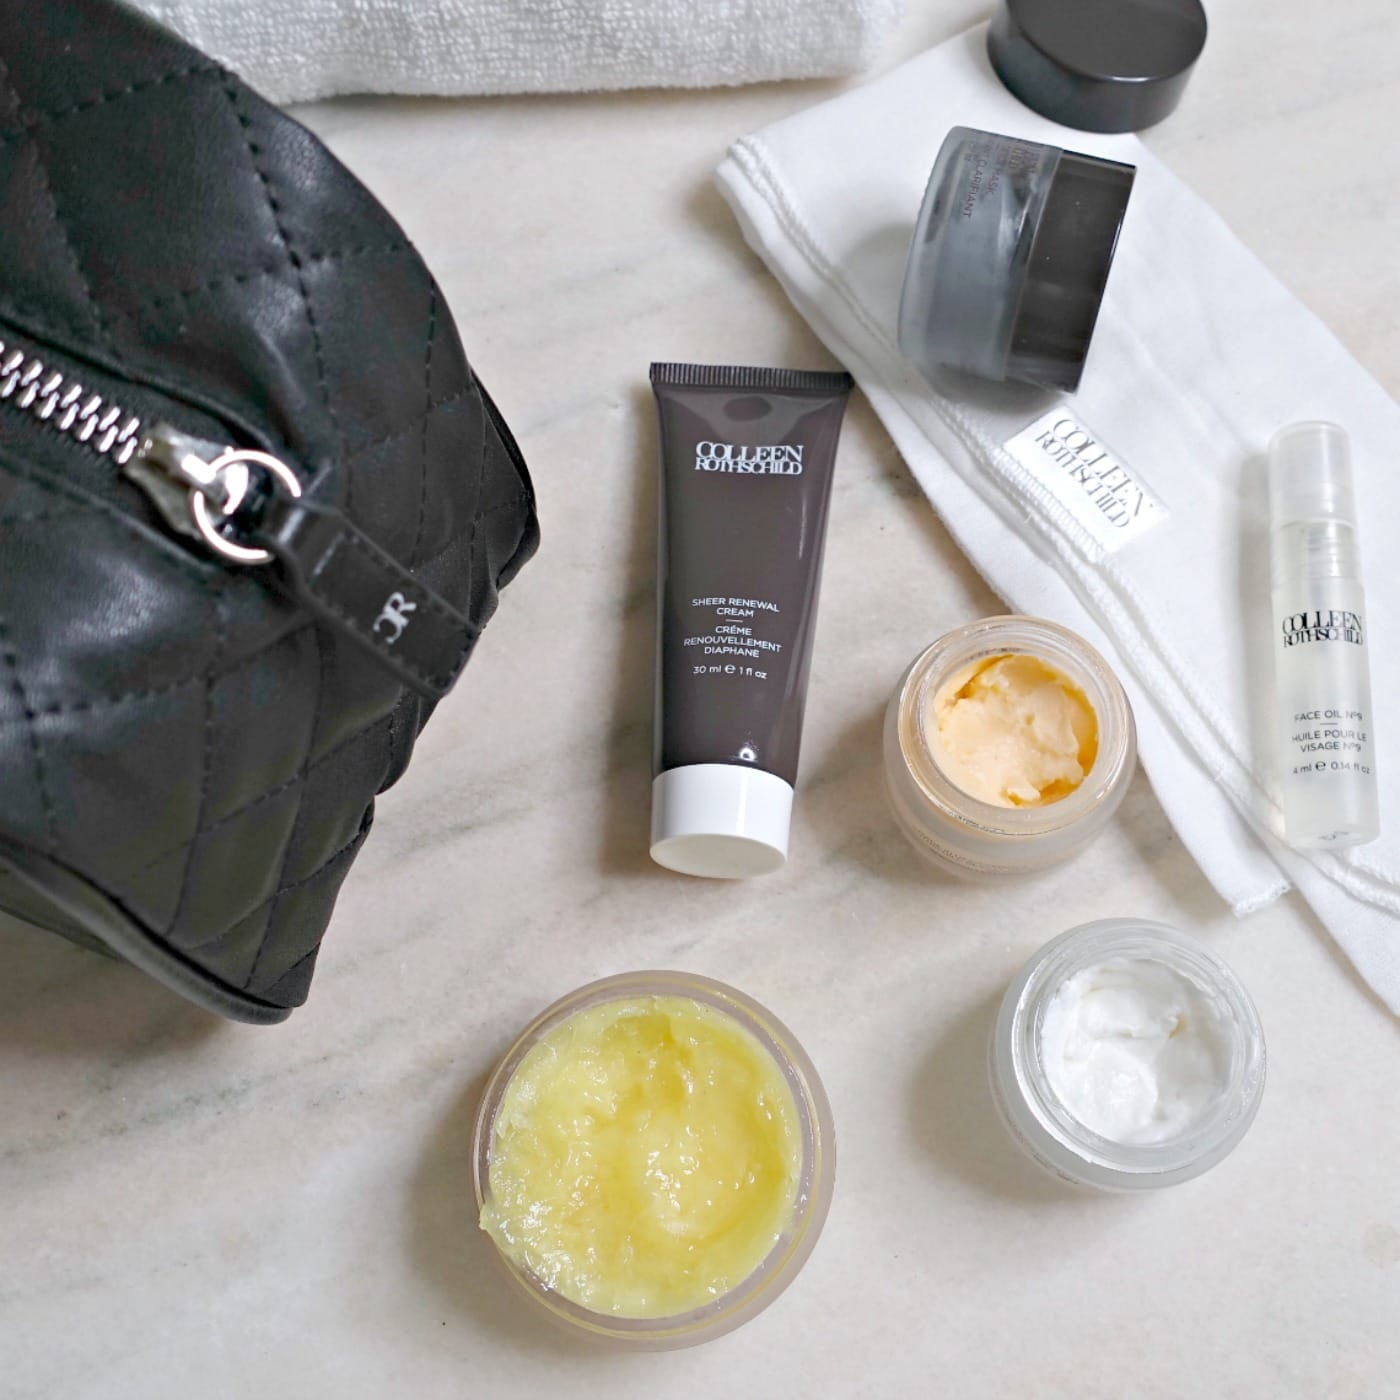 Luxury Skincare From Colleen Rothschild on Sale